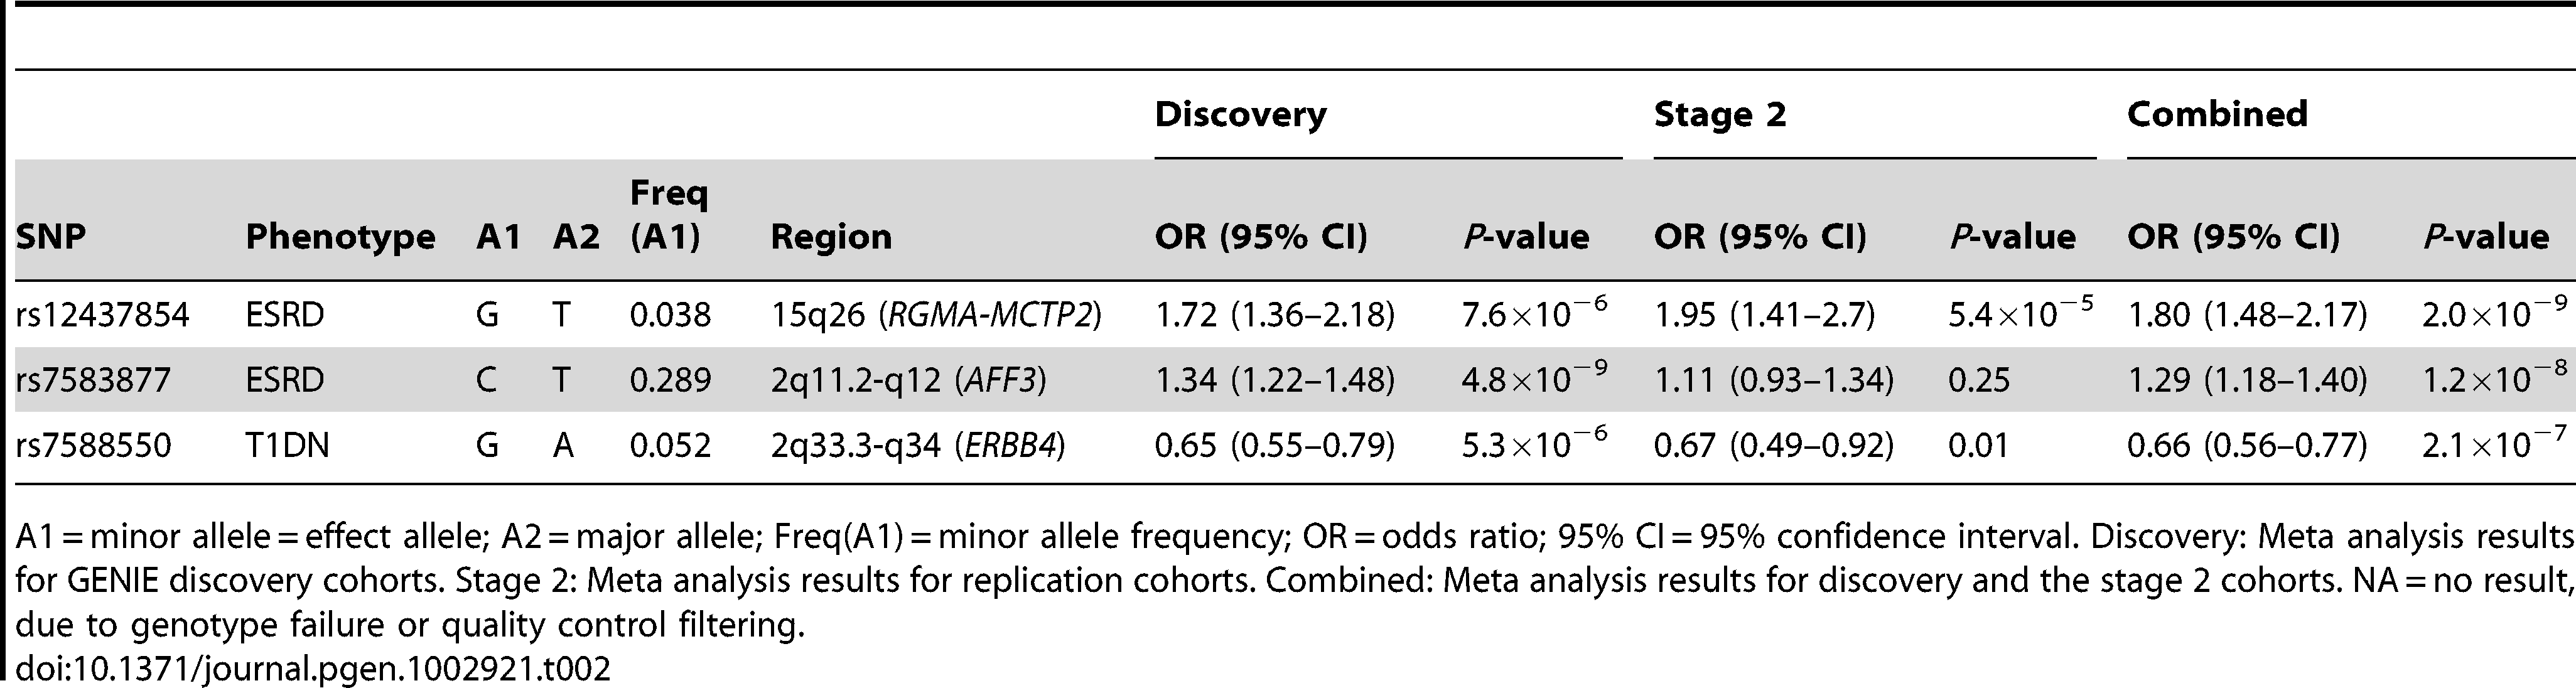 Results from discovery, second stage, and combined meta-analysis for supported markers.